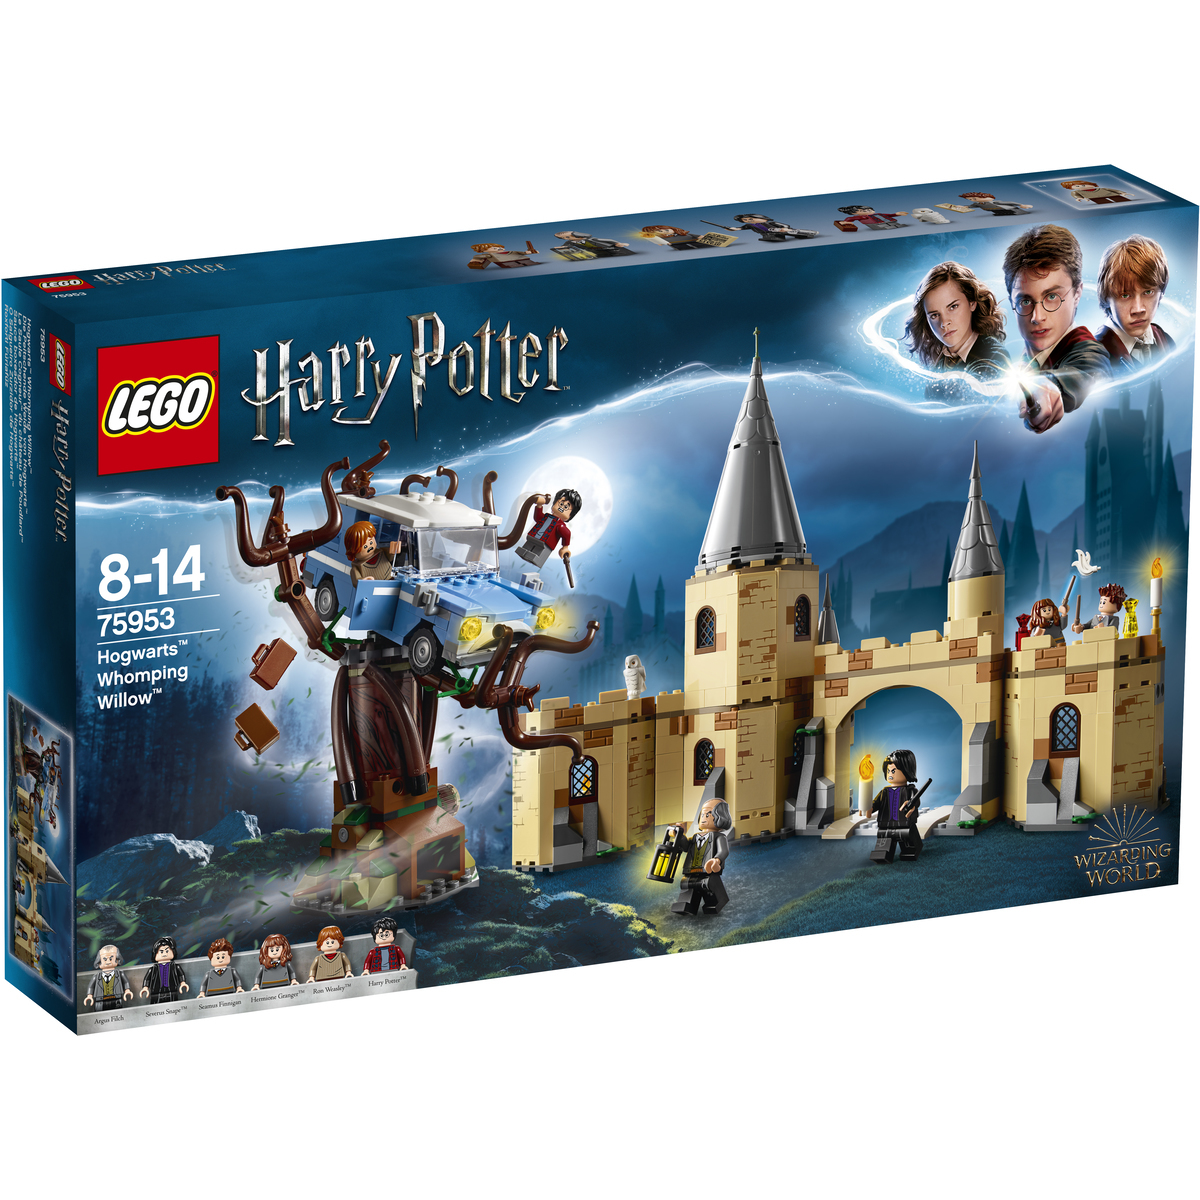 LEGO 75953 Harry Potter™ - Hogwarts™ Whomping Willow™